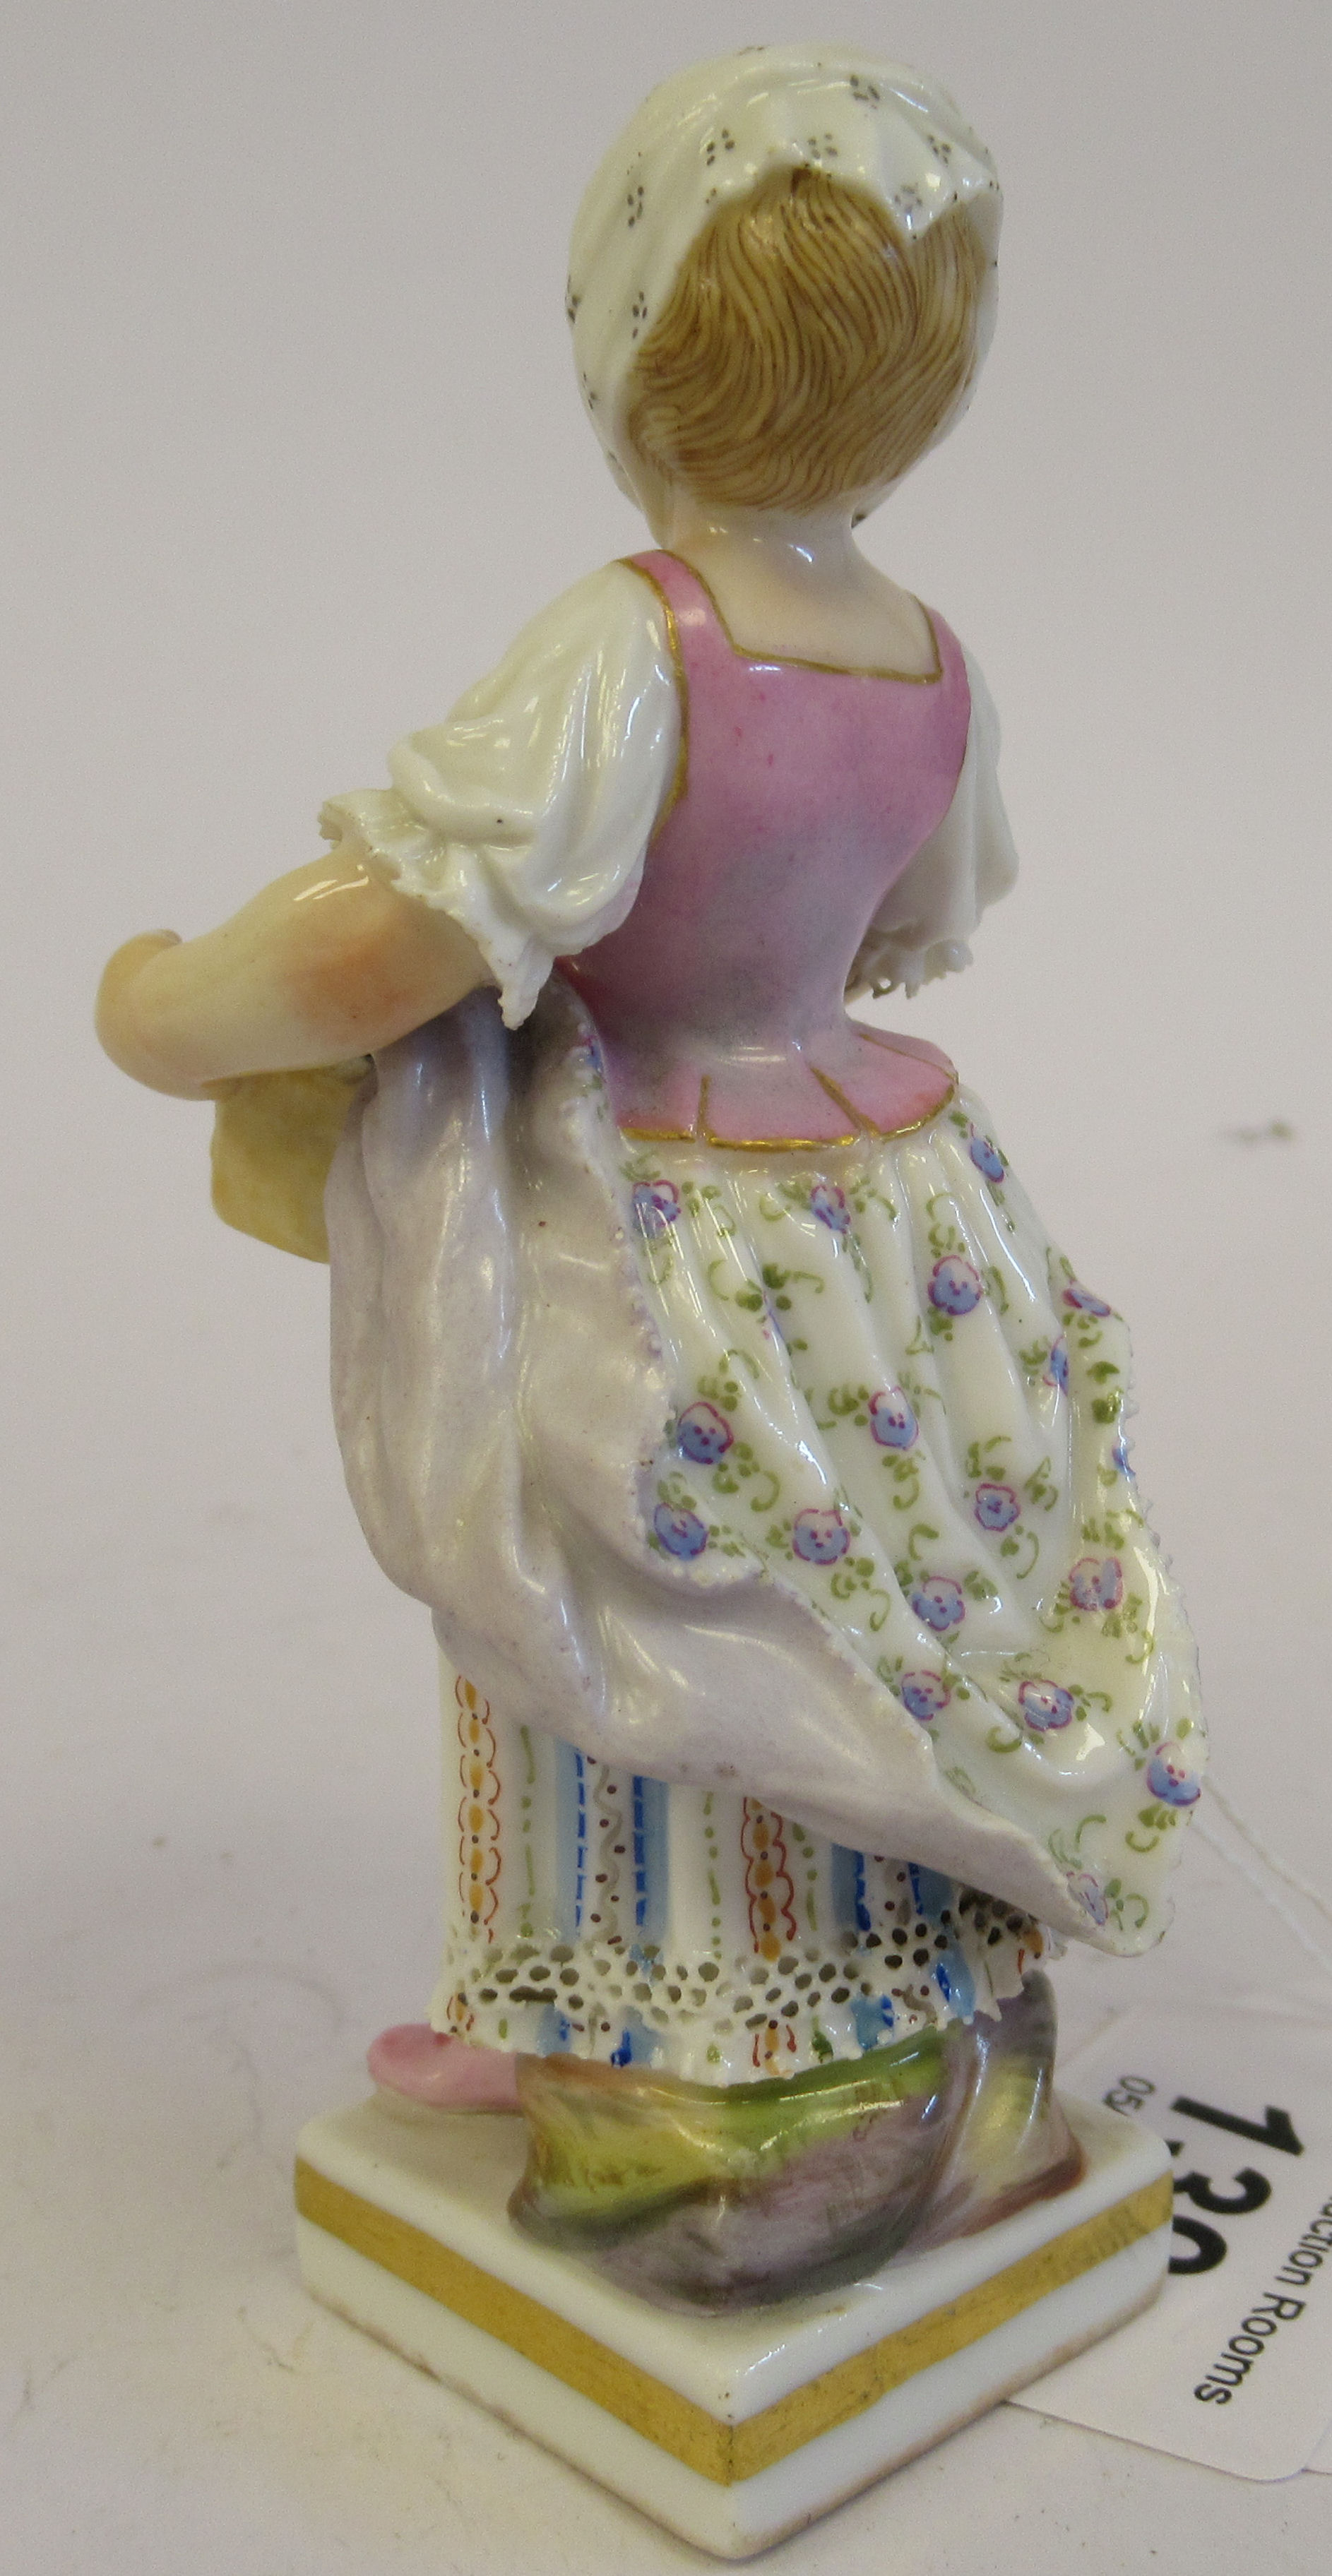 A 19th/20thC Meissen porcelain figure, a girl wearing a floral skirt, carrying a basket of grapes, - Image 3 of 7